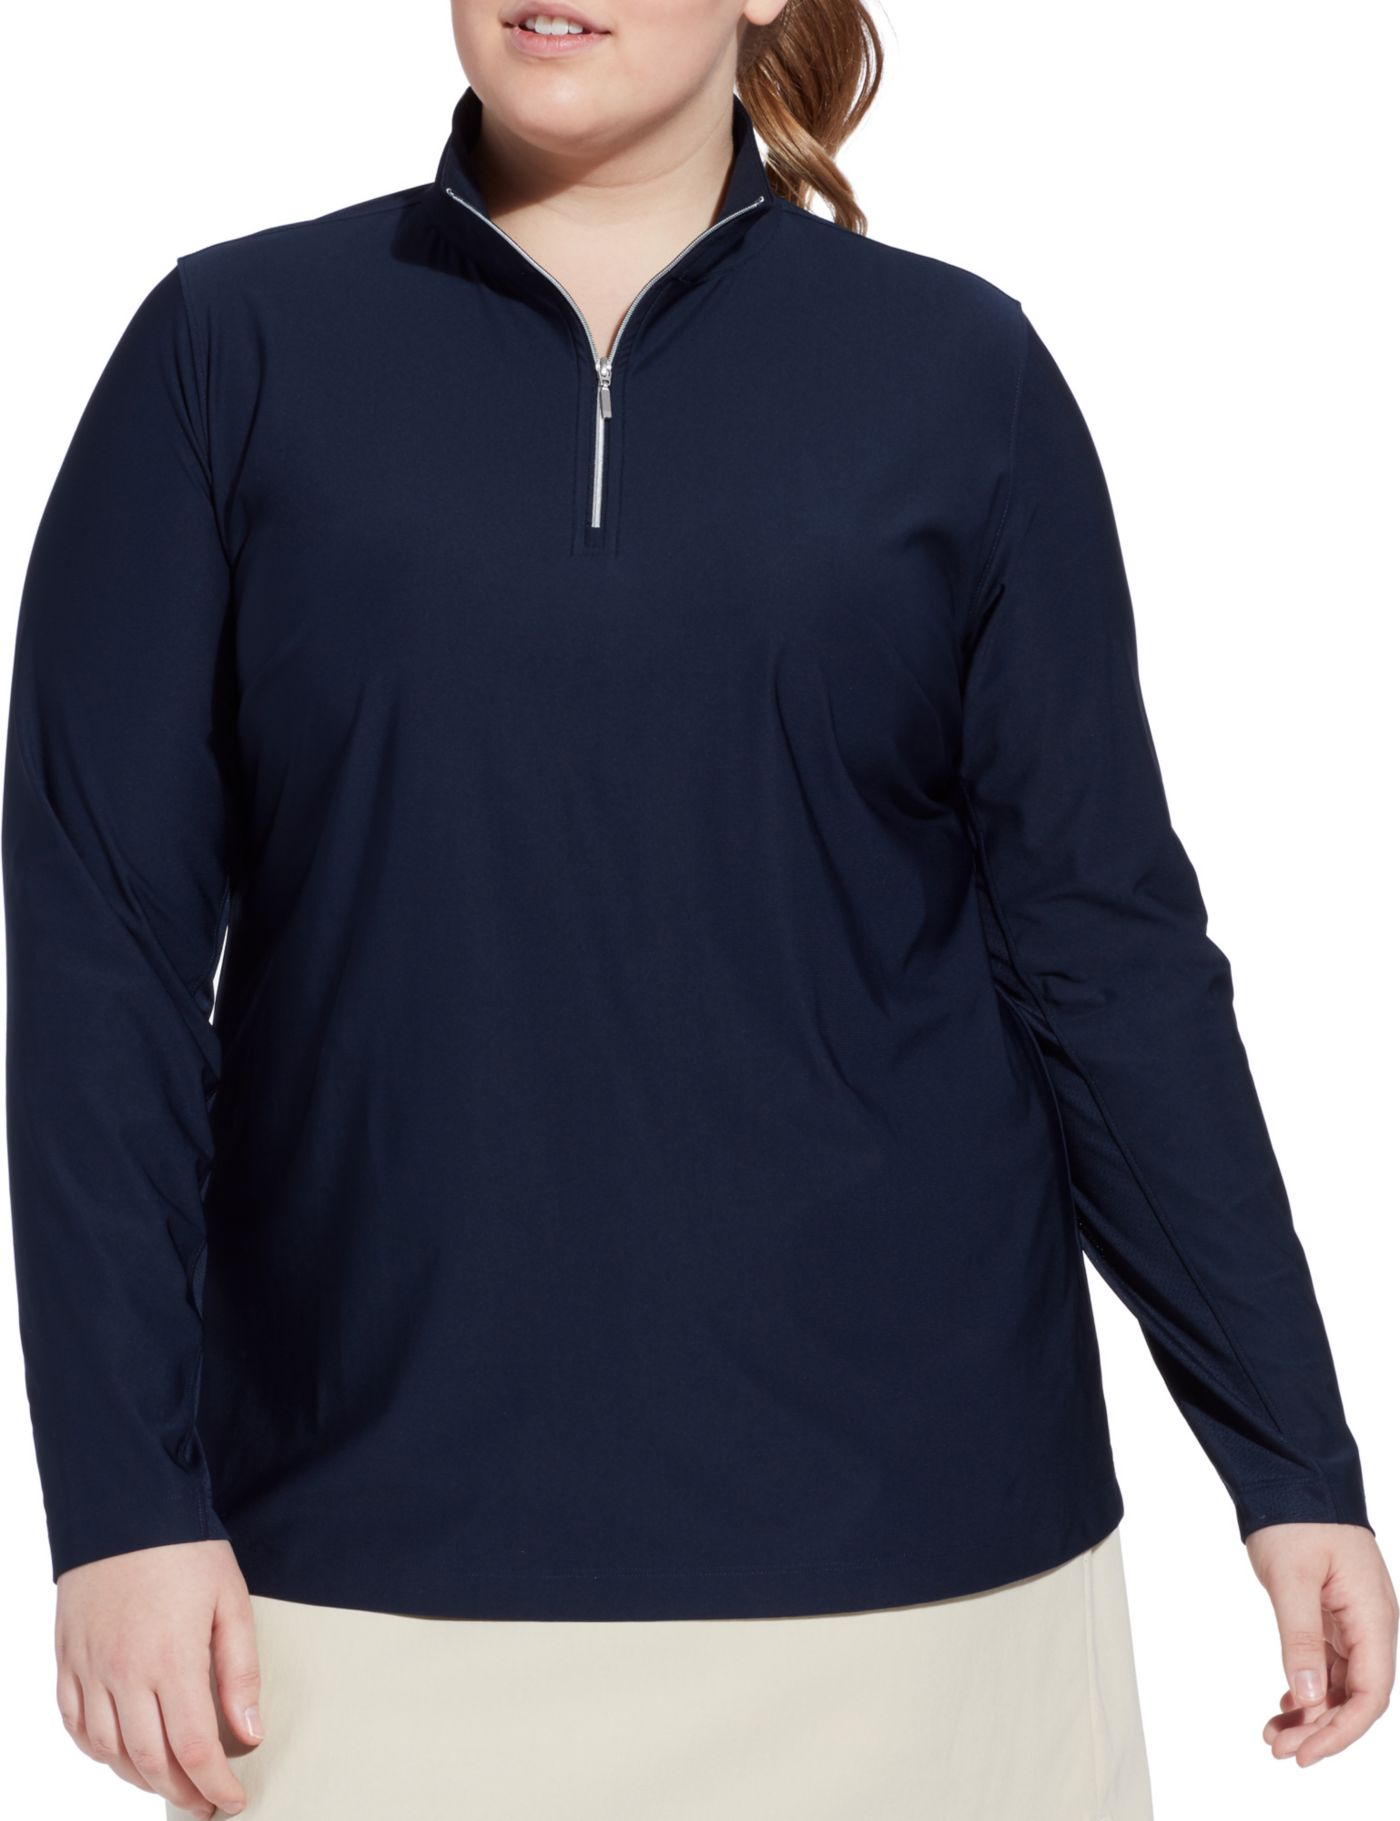 Lady Hagen Women's UV ¼-Zip Golf Pullover - Extended Sizes